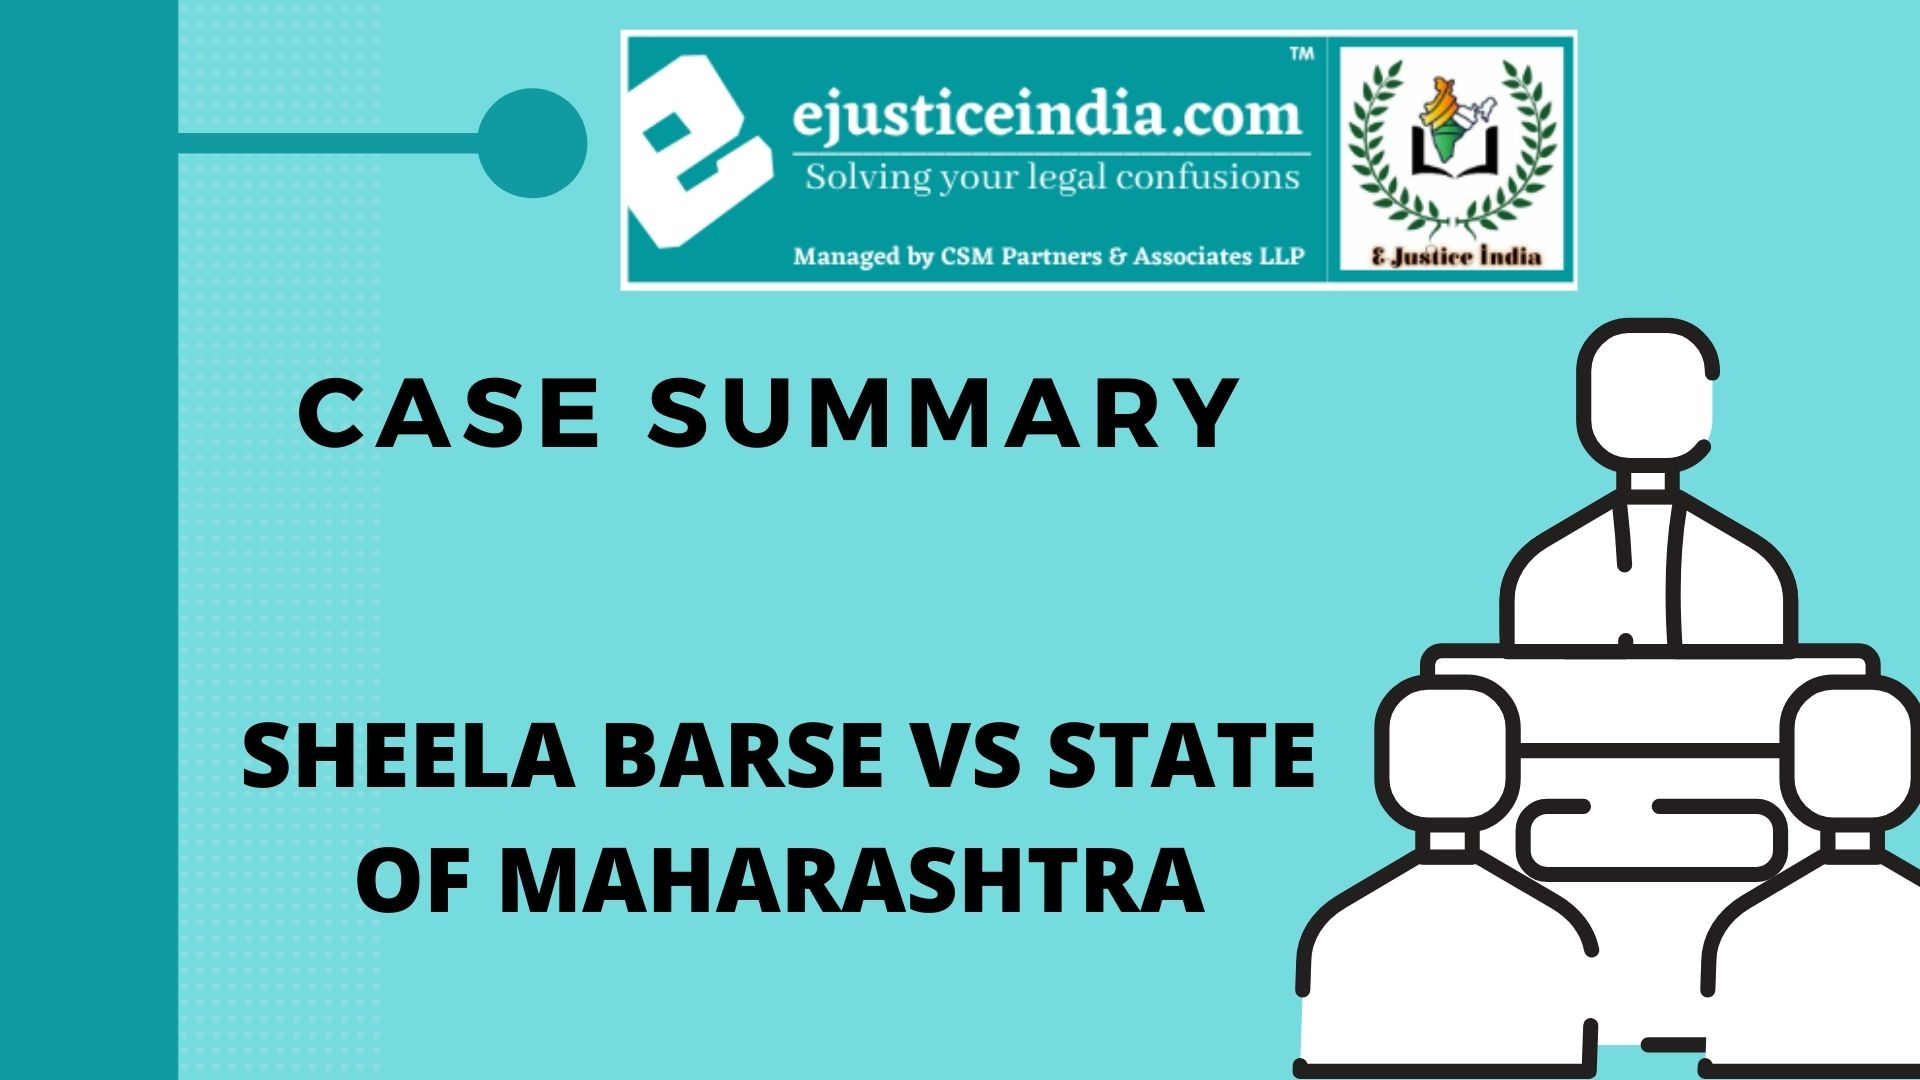 SHEELA BARSE VS STATE OF MAHARASHTRA